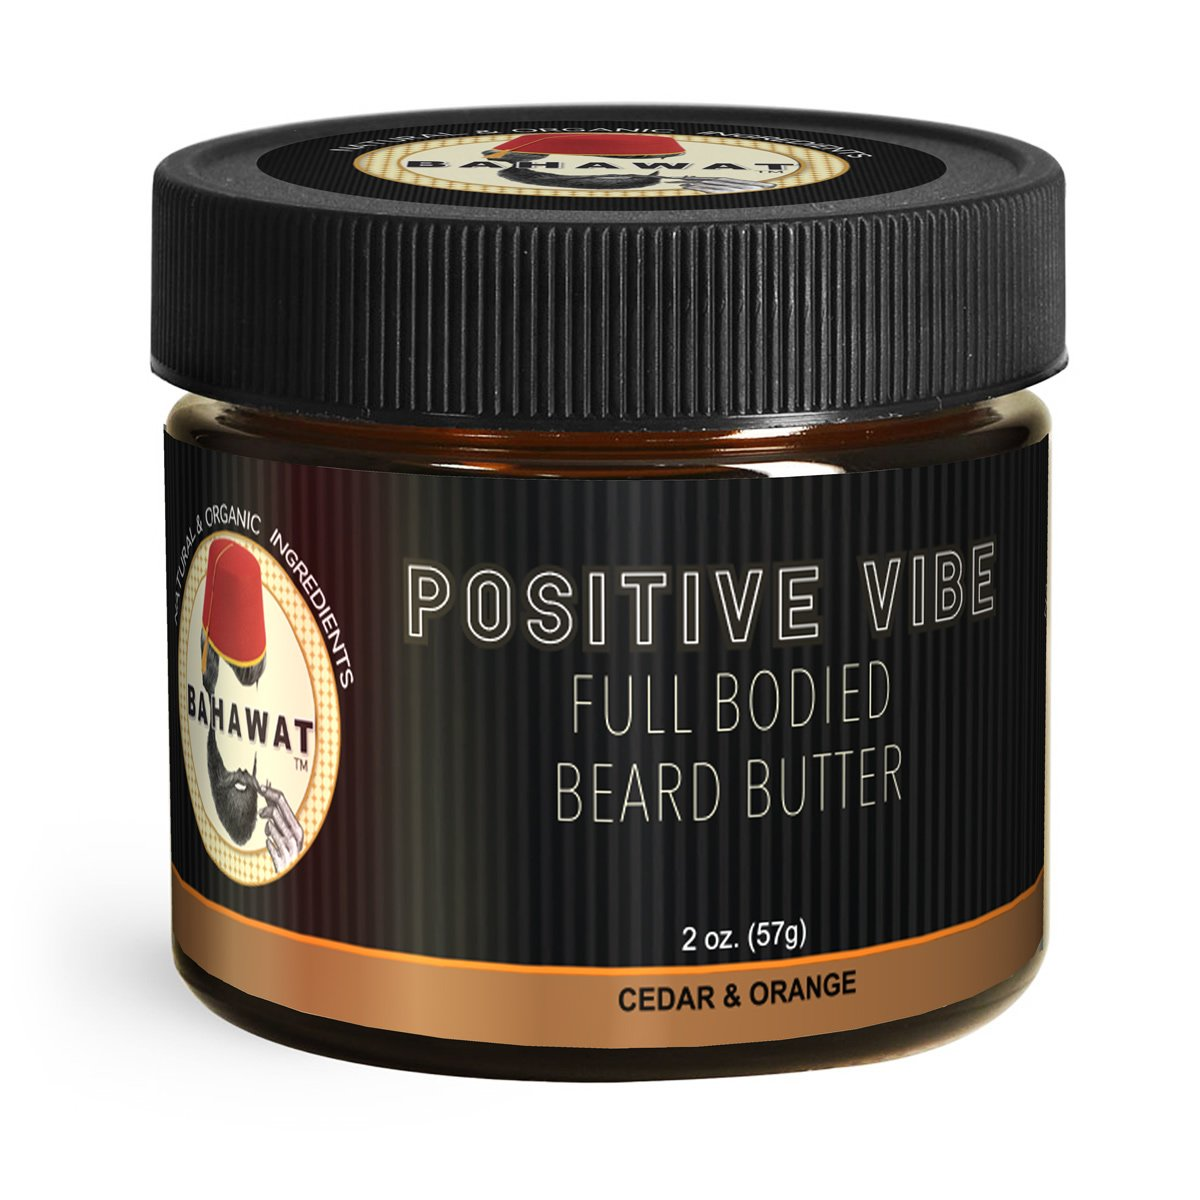 "Bahawat Beard Butter Cedar Orange ""Positive Vibe"""